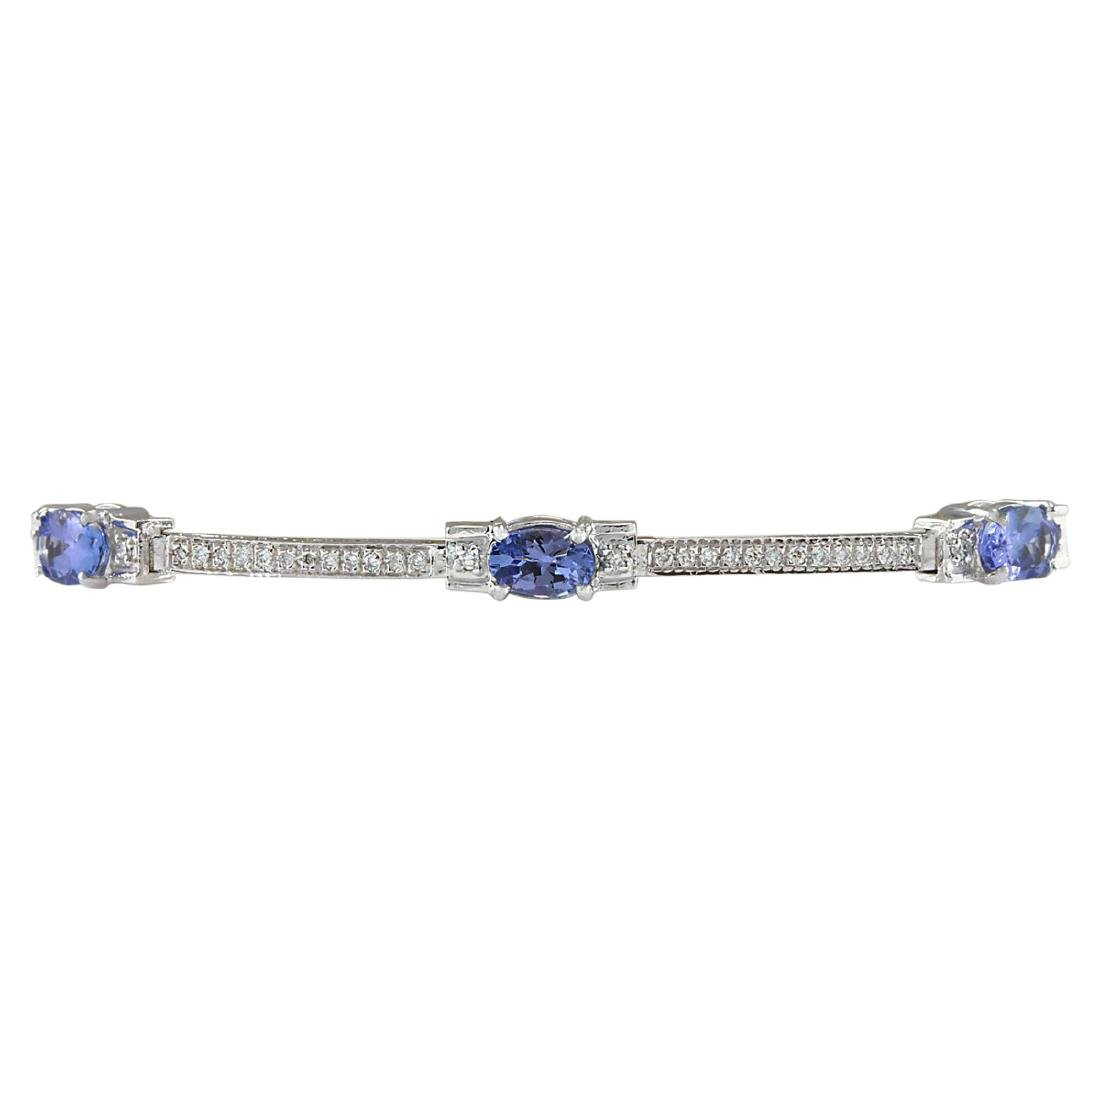 3.75 CTW Natural Tanzanite And Dimond Bracelet In 18K